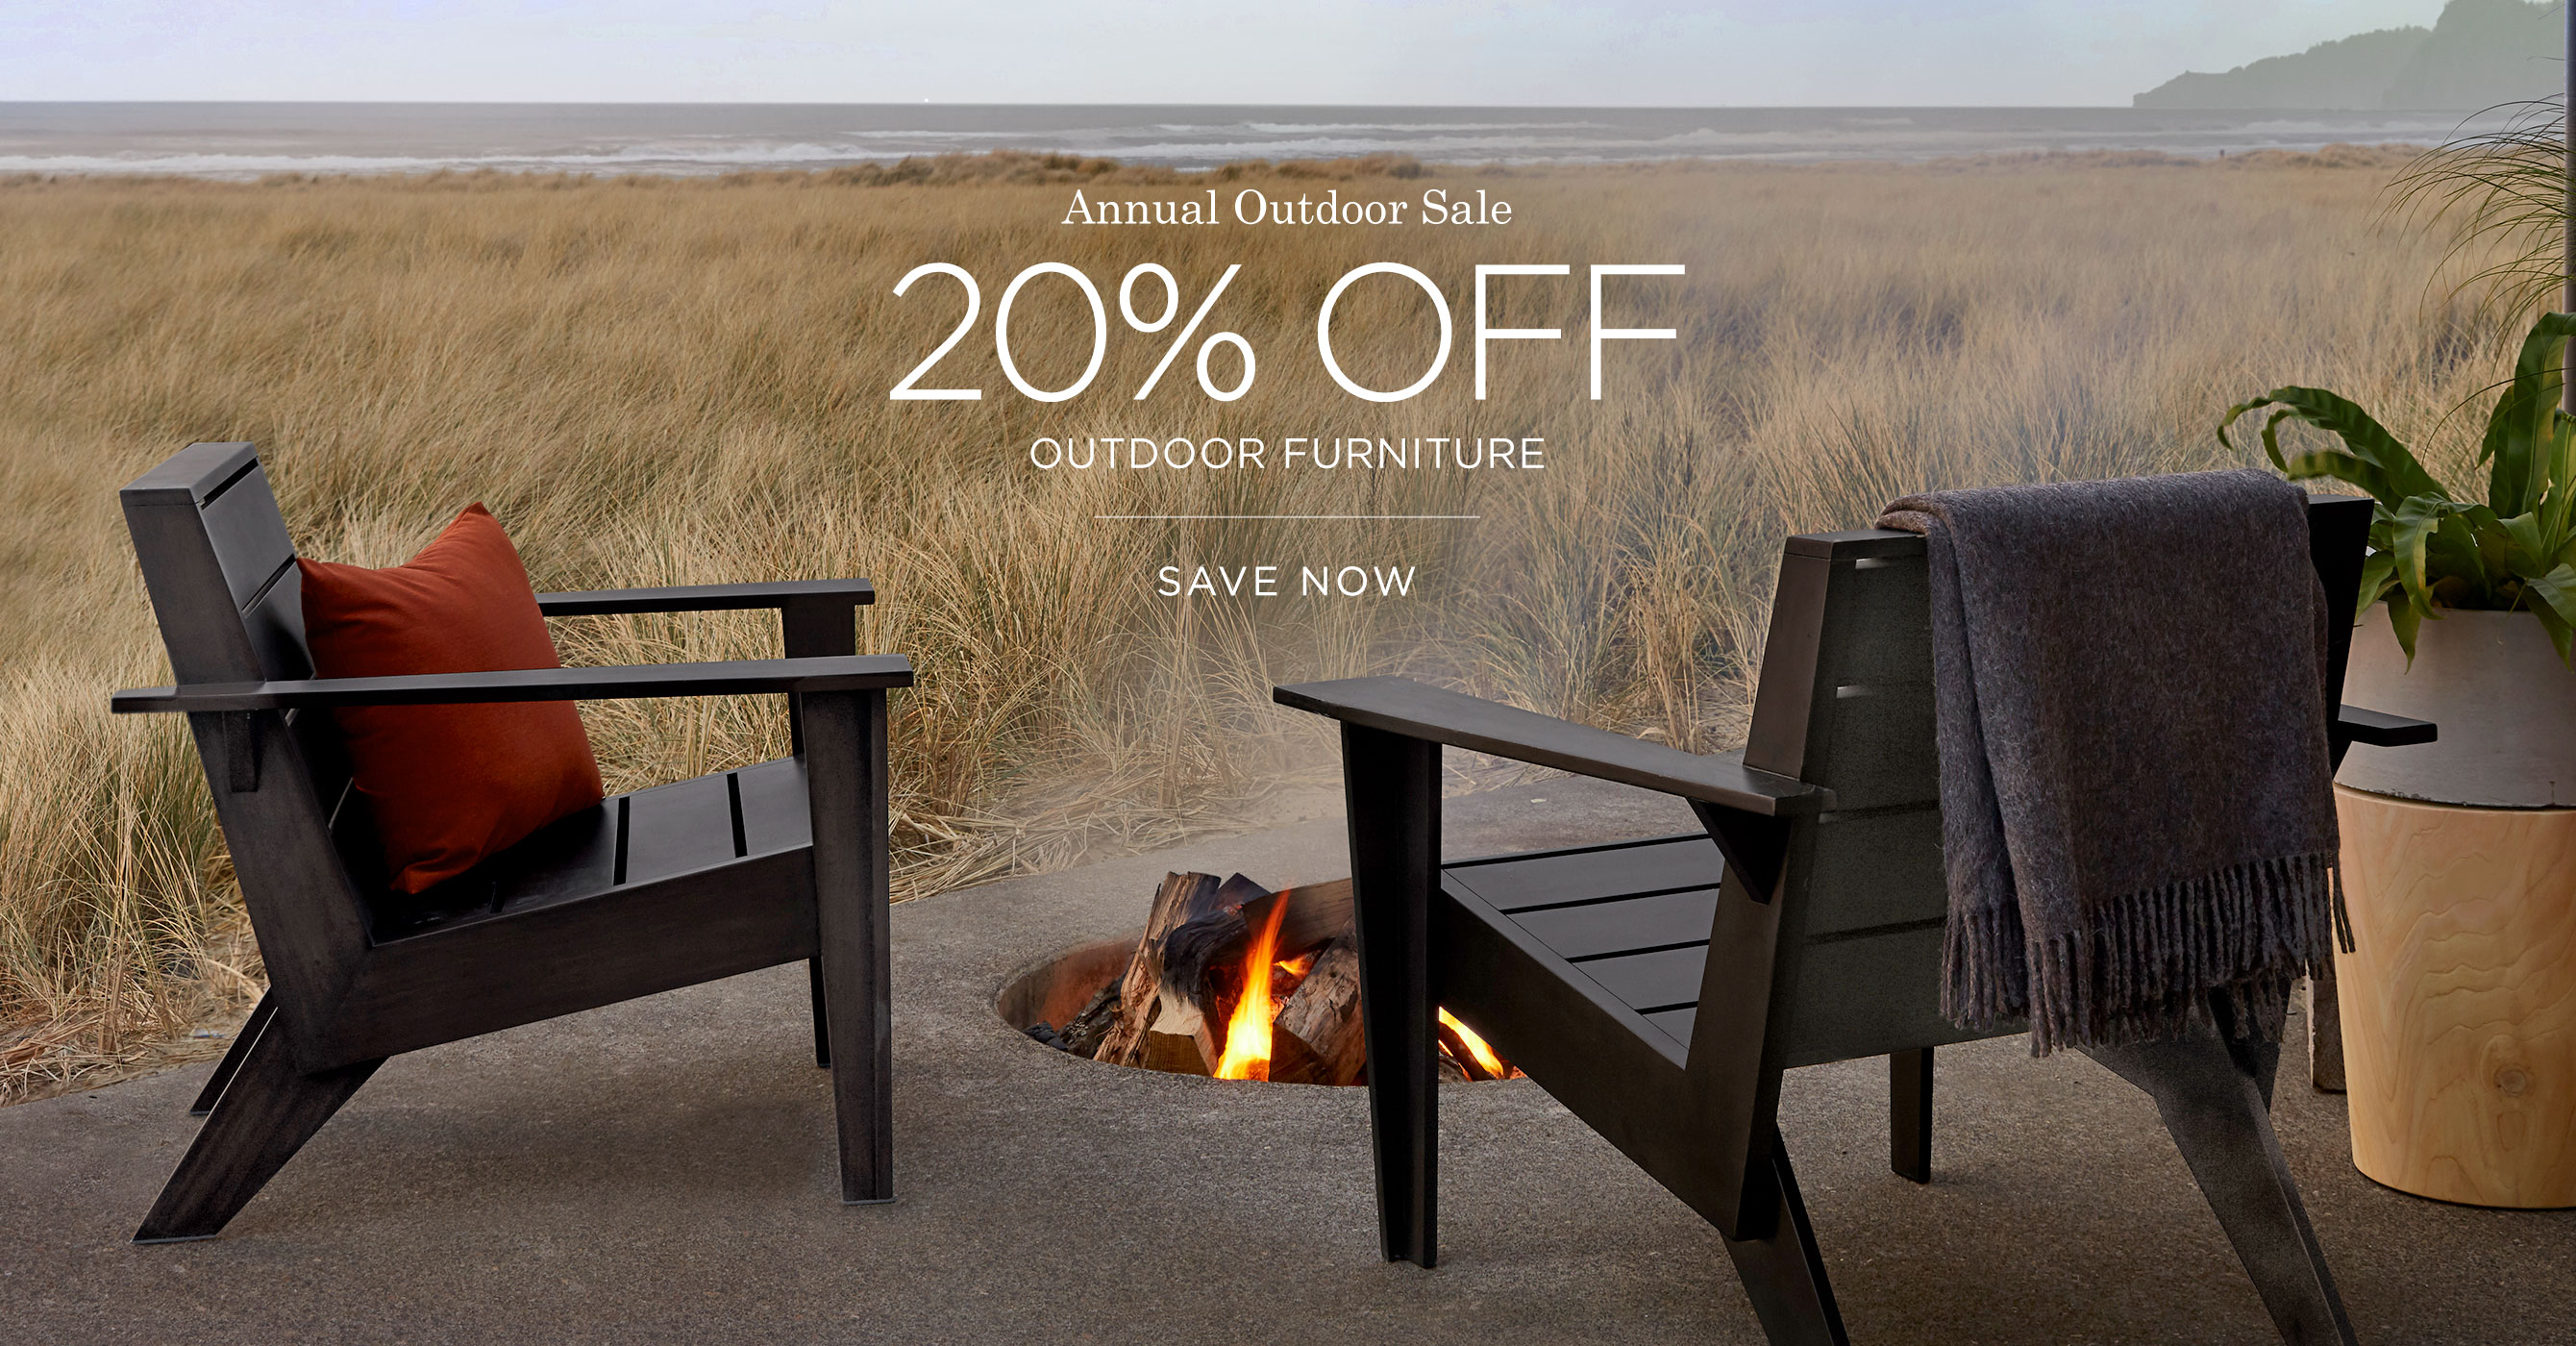 Save 20% on Outdoor Furniture